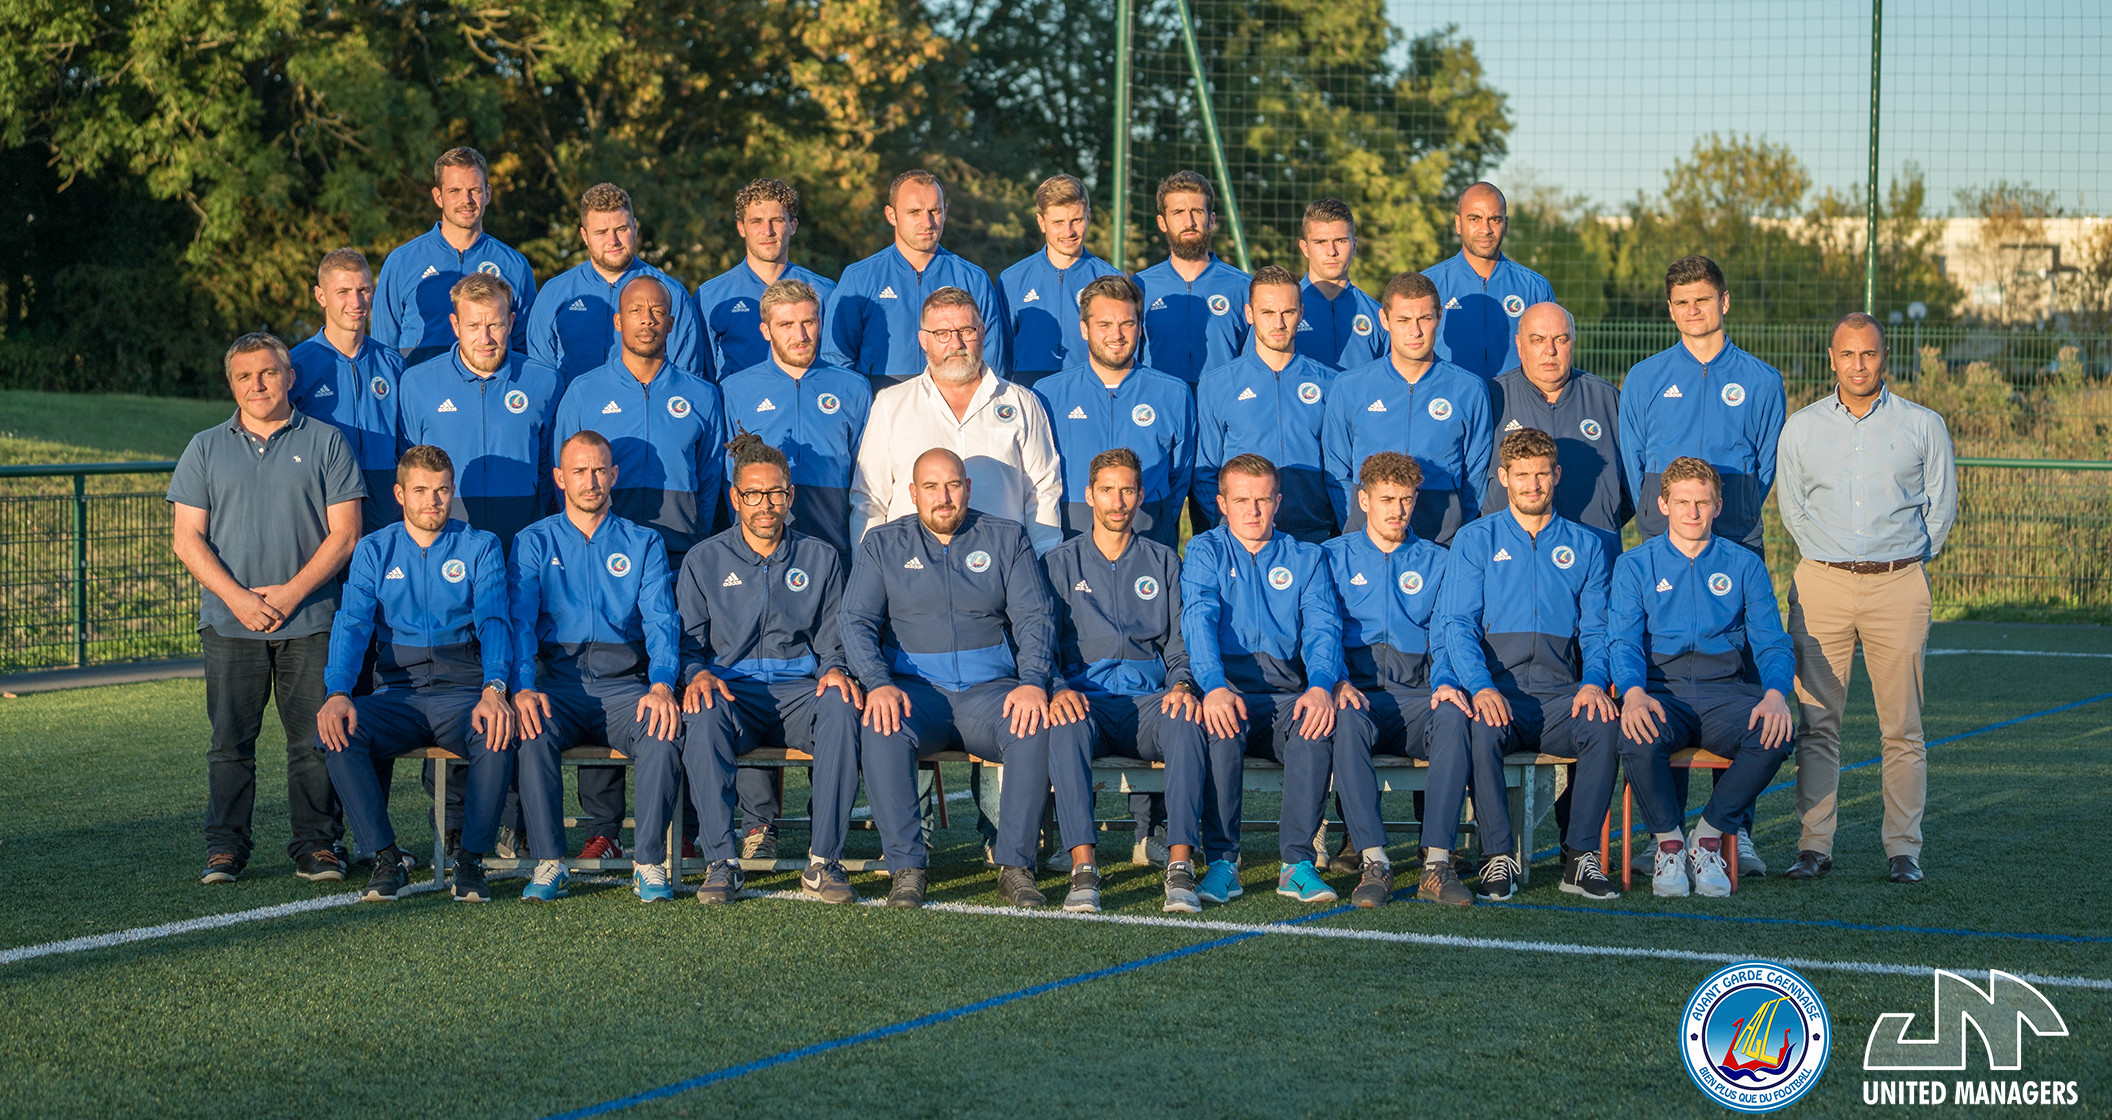 Photo equipe United Managers